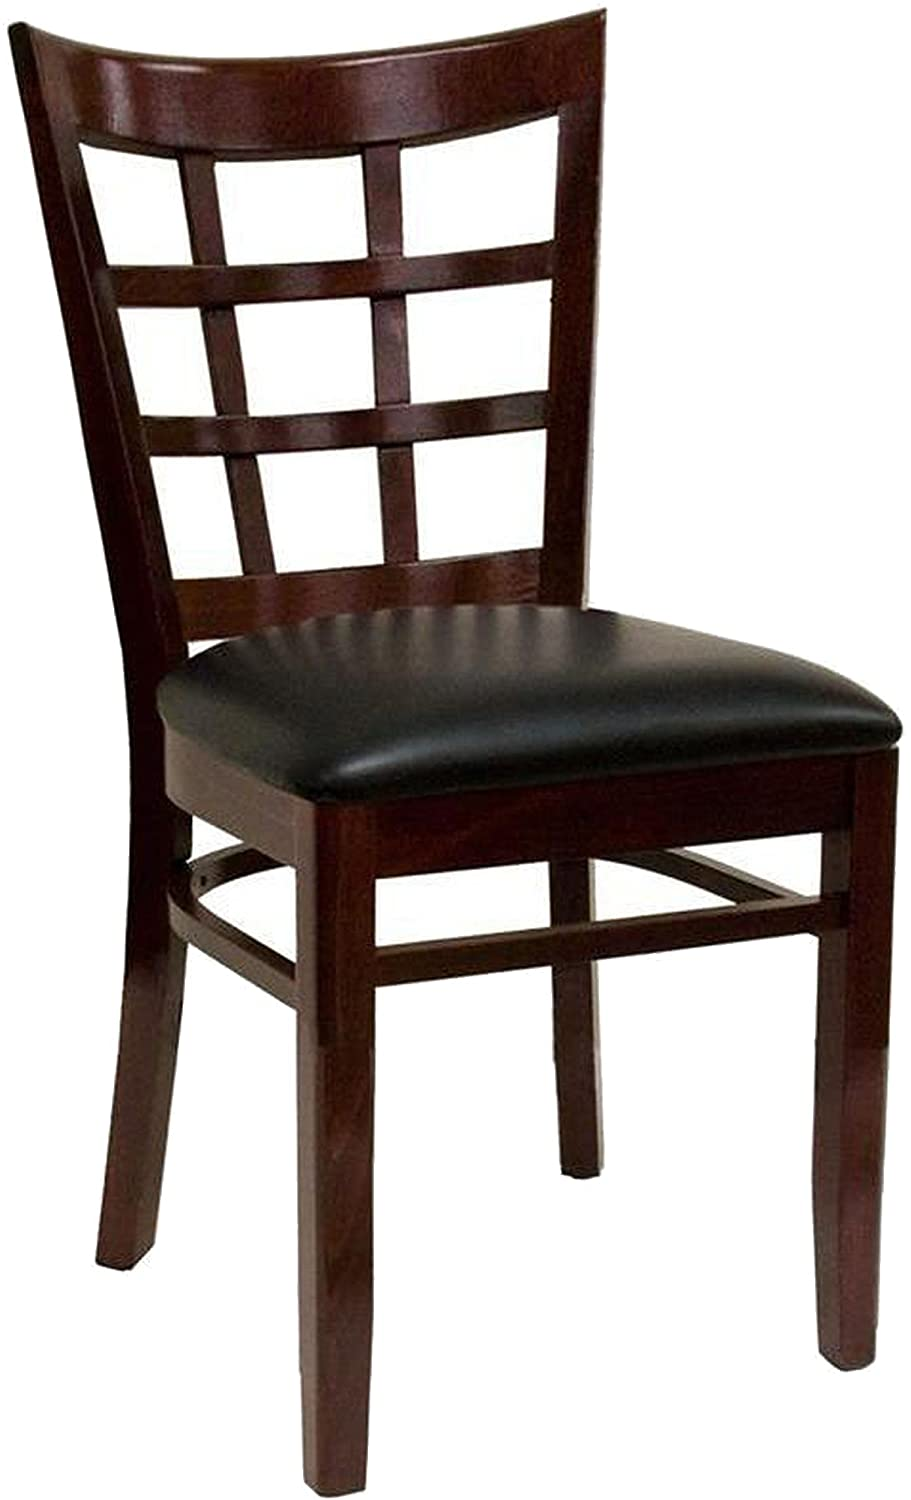 American Tables Seating 523 DM GR5 Nine Grid Back Wood Chair Grade 5 Seat 17 x 17 x 34 Dark Mahogany